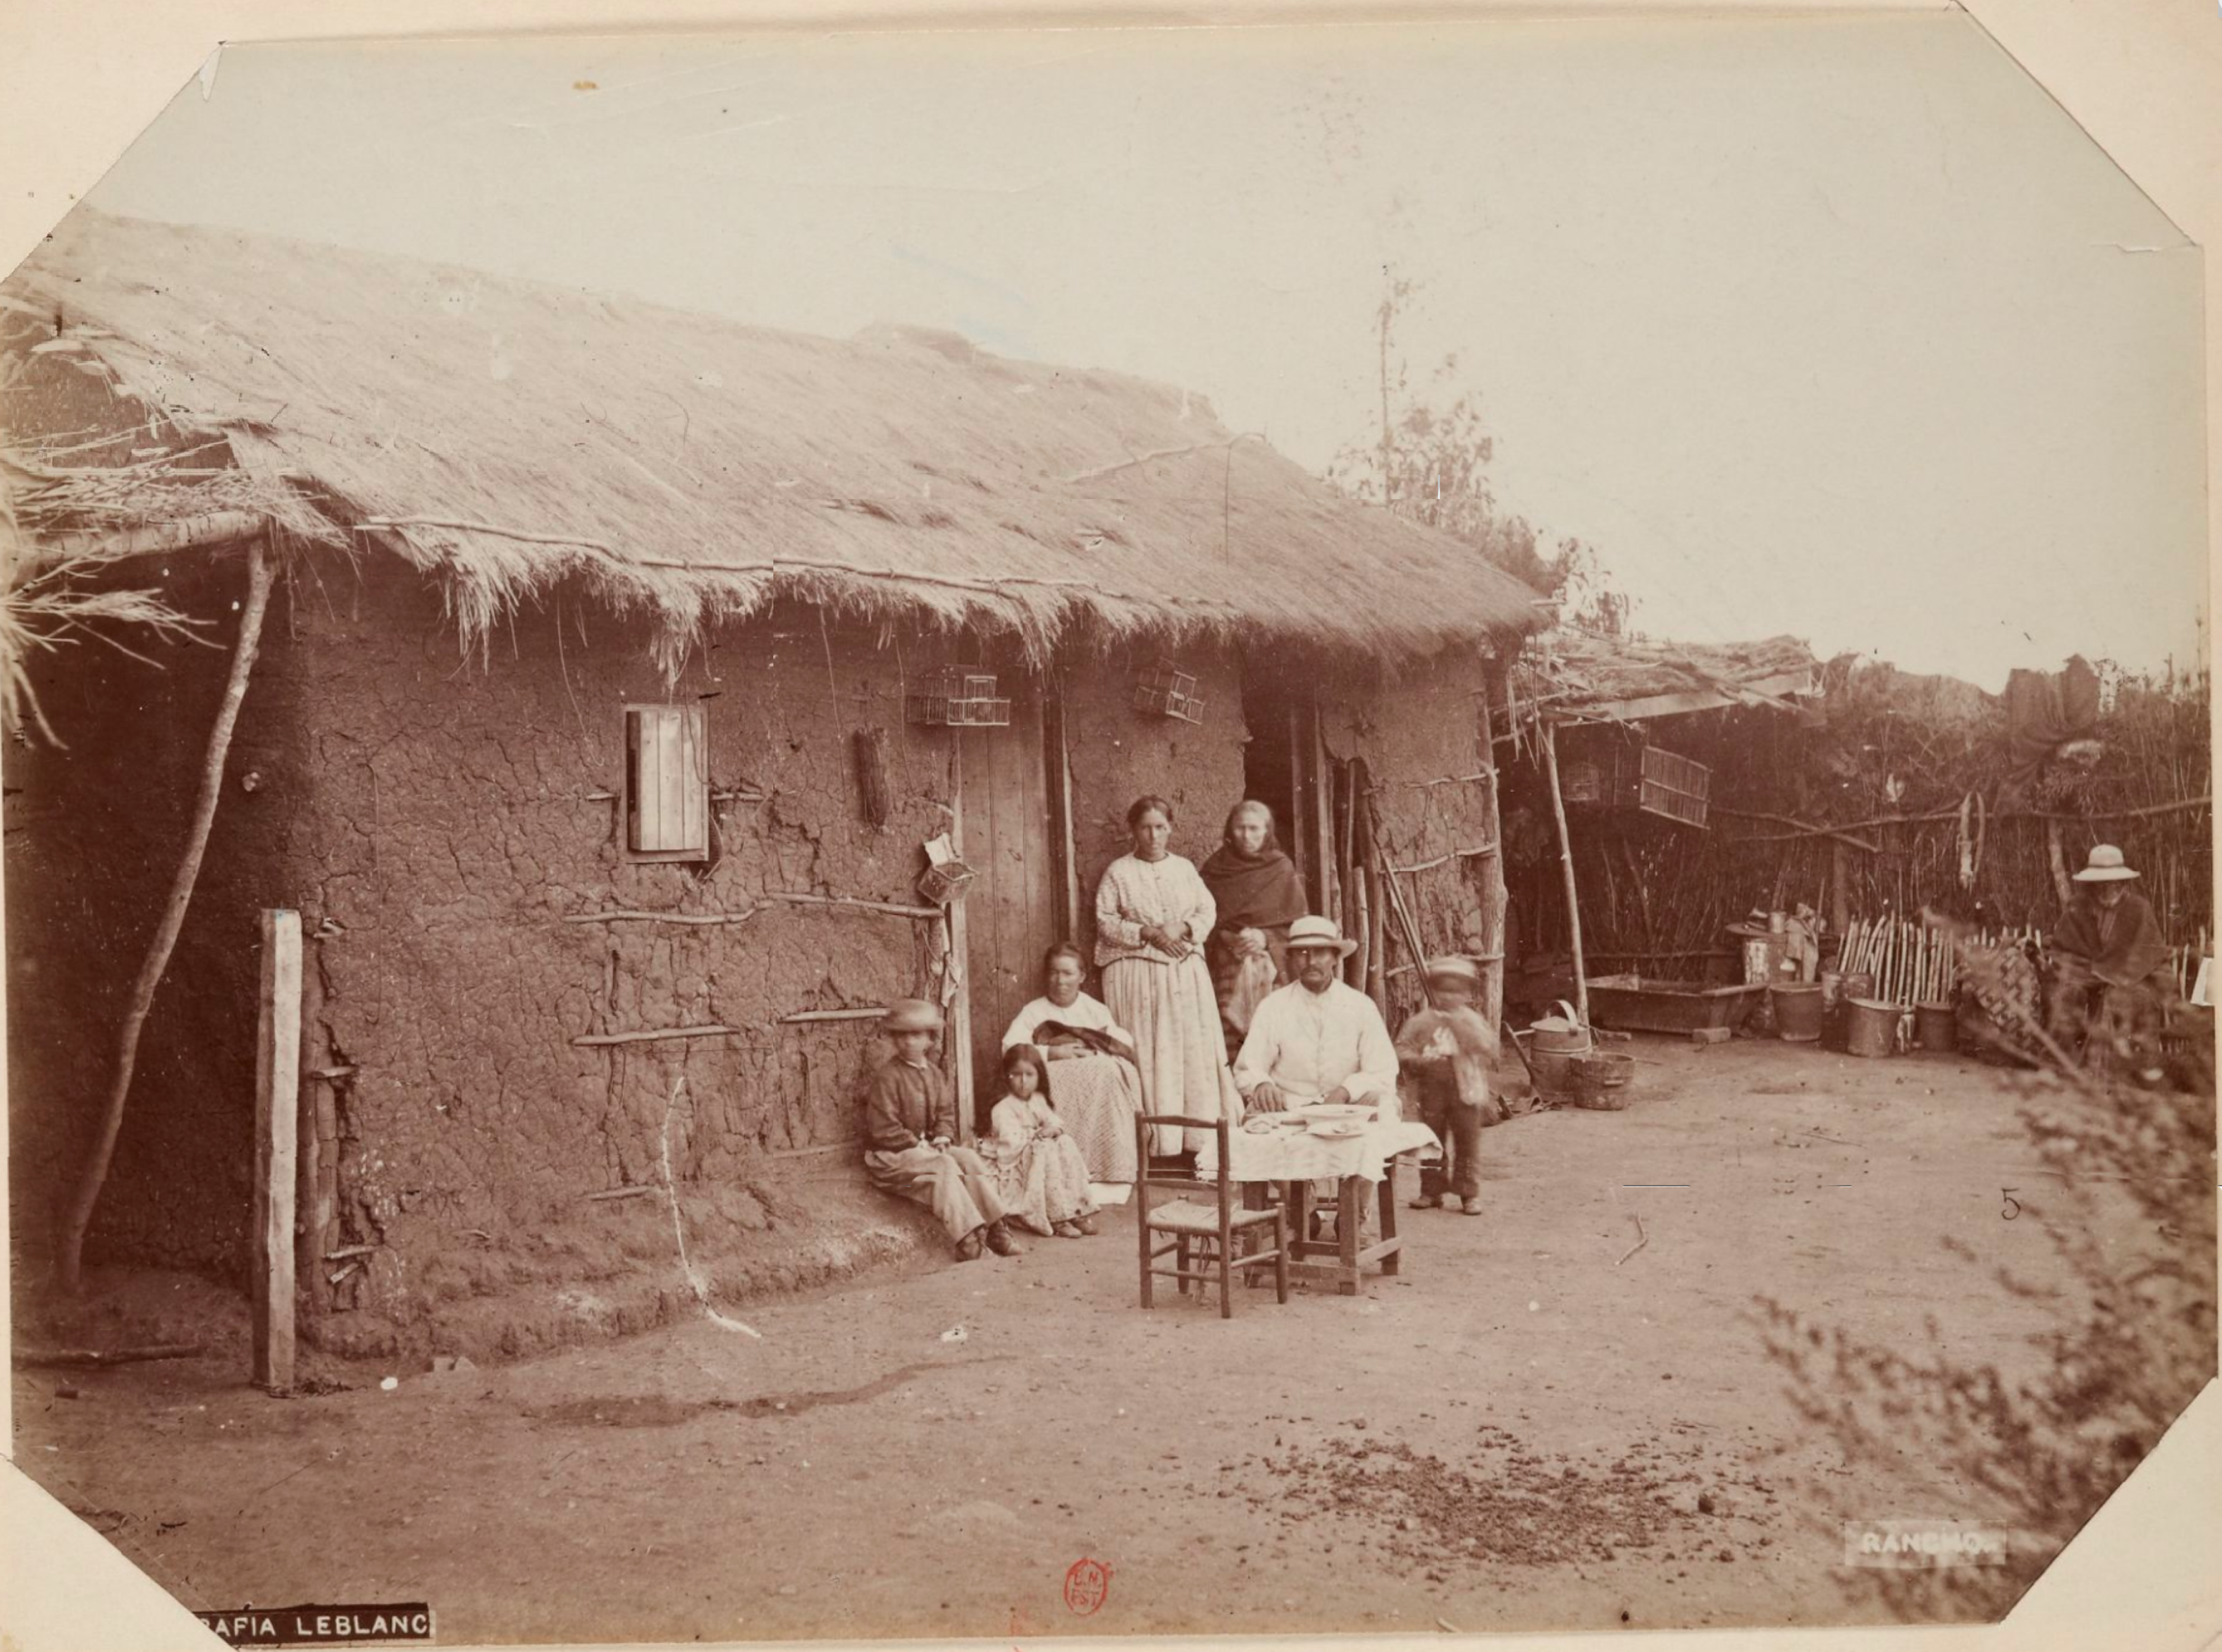 Enterreno - Fotos históricas de chile - fotos antiguas de Chile - Familia campesina y su vivienda en la Zona Central, 1895